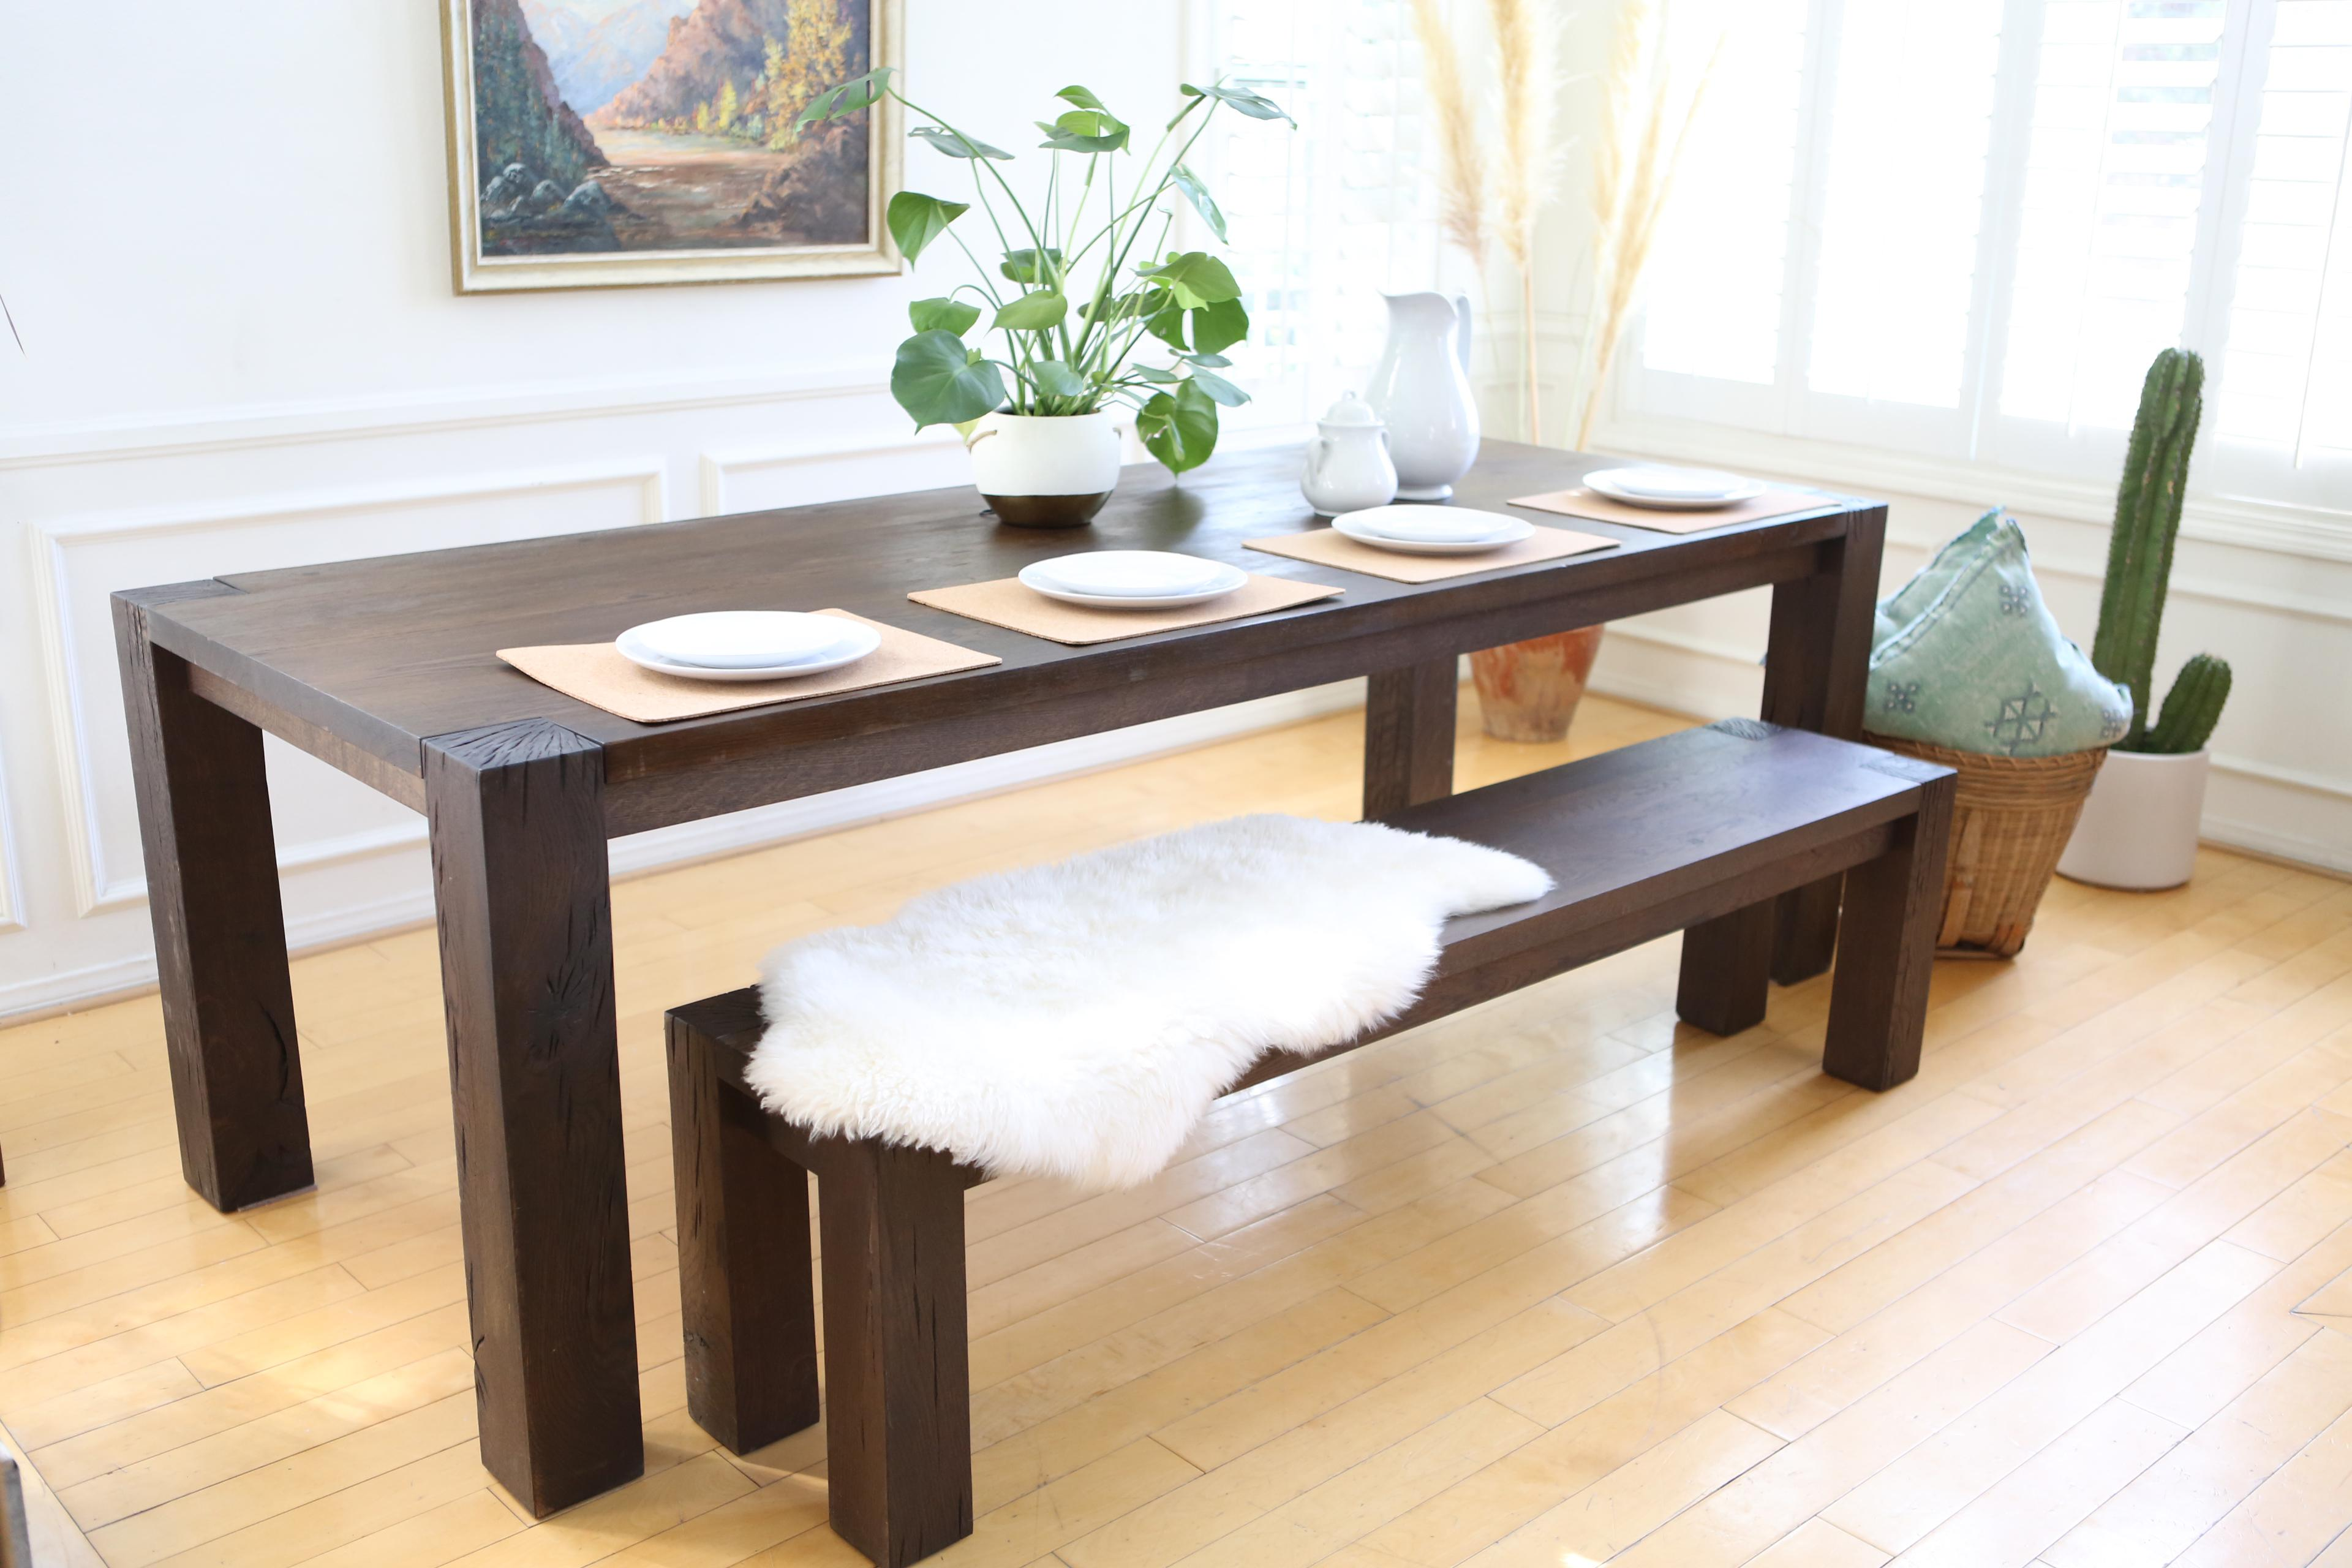 Crate U0026 Barrel Big Sur Dining Table With Bench   Image 3 ...